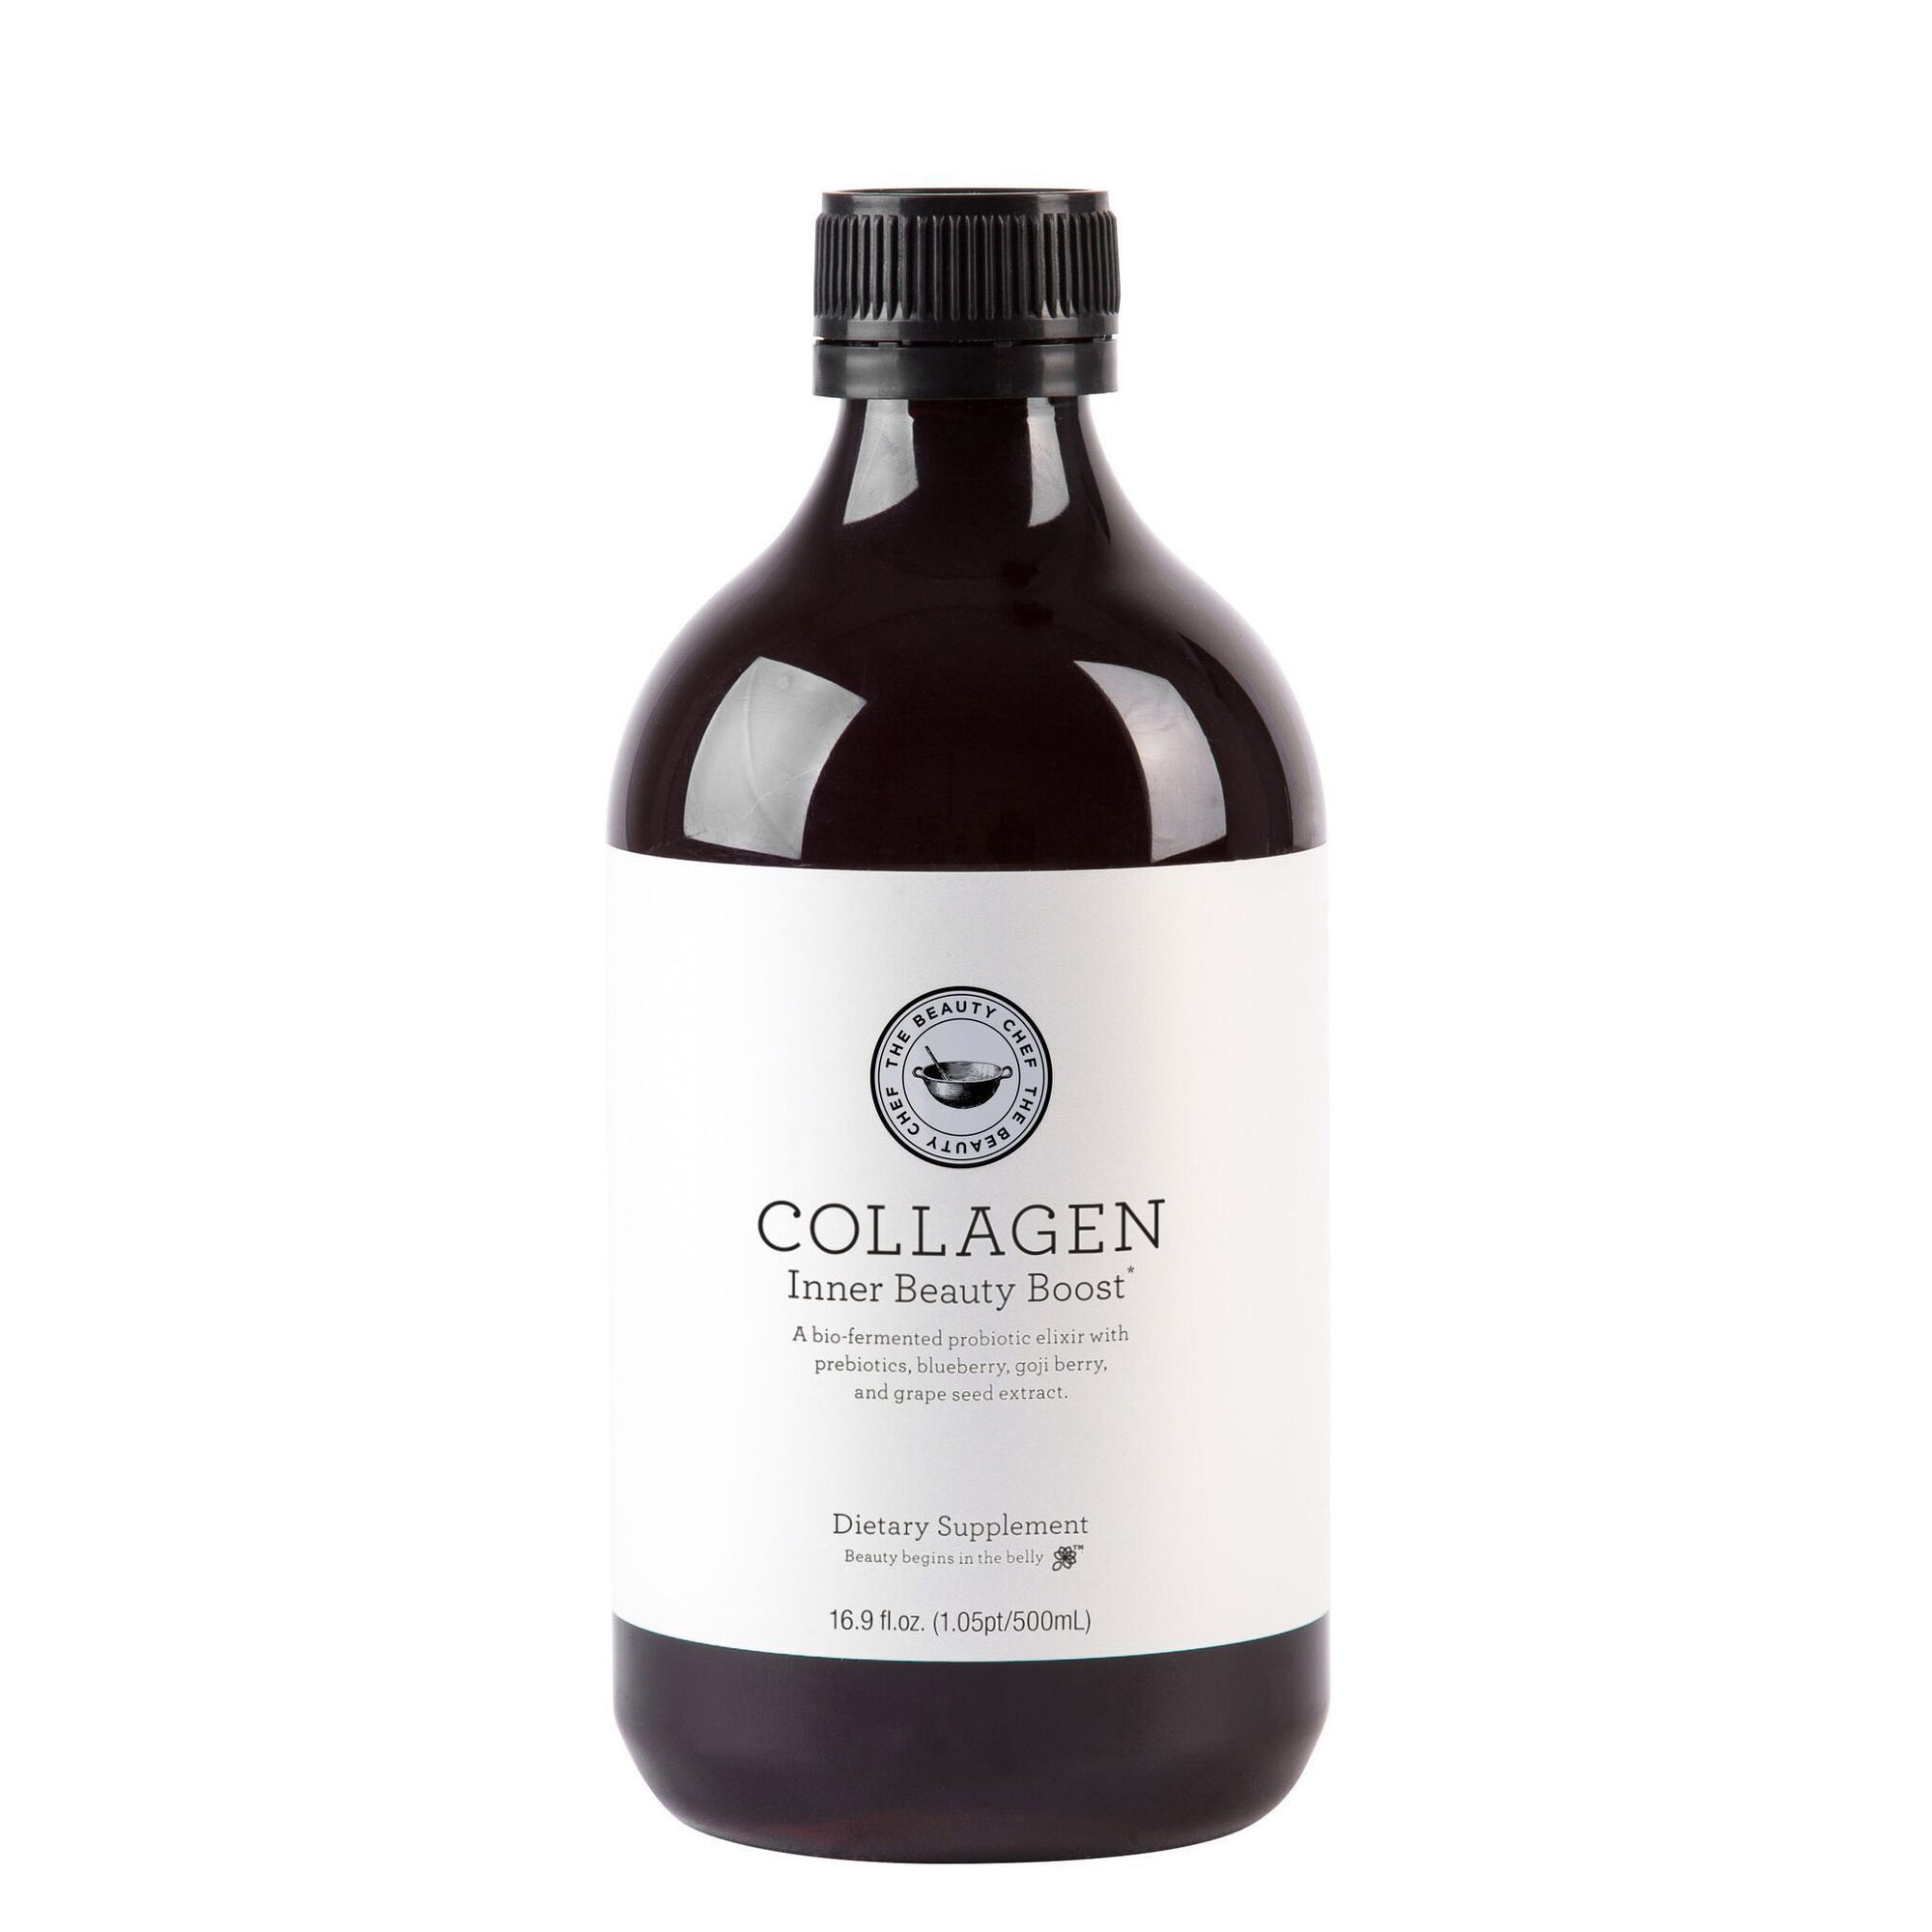 COLLAGEN Inner Beauty Boost